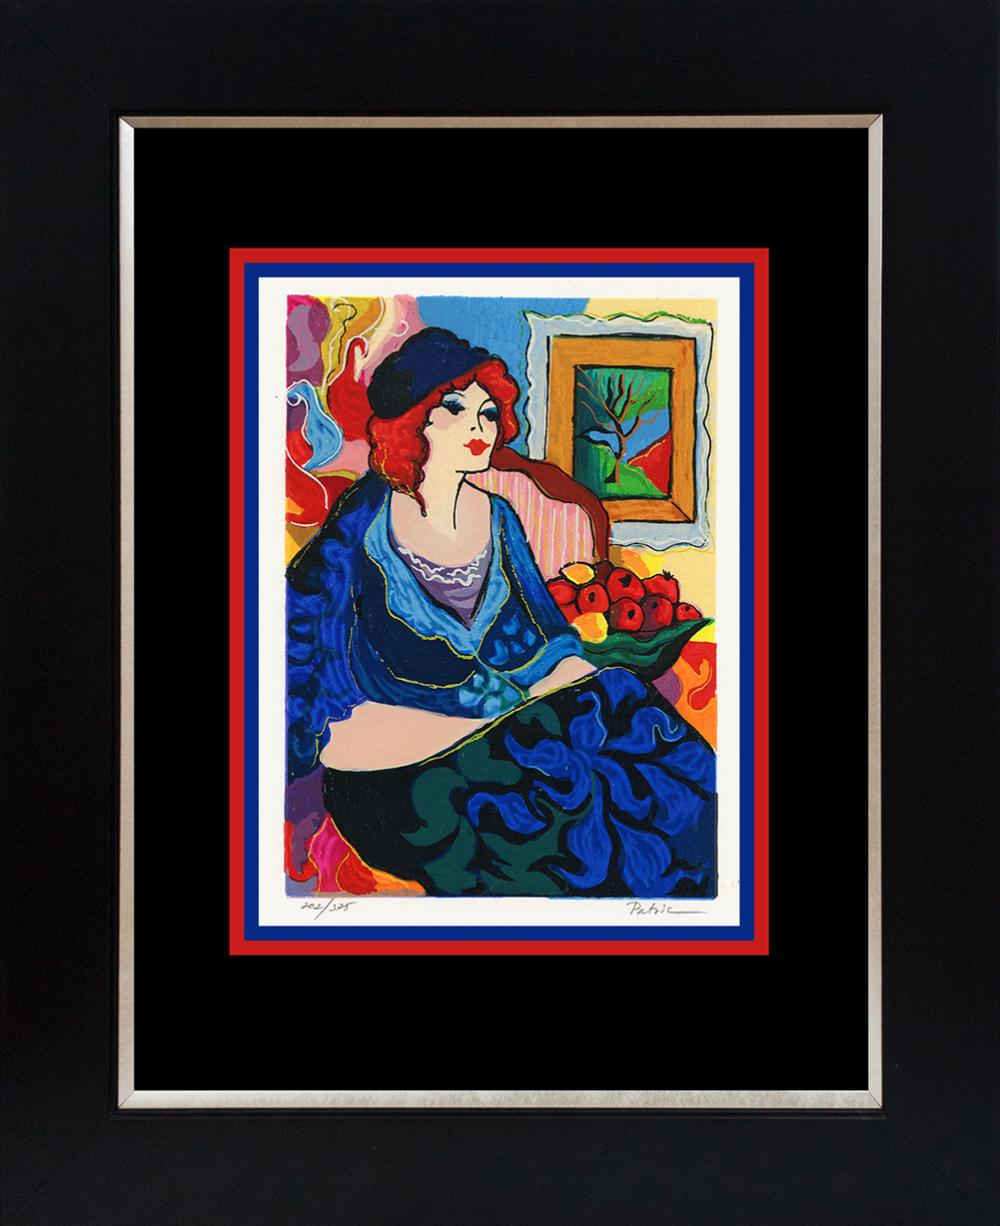 Lot 3566: Patrica Limited Edition Hand Signed Serigraph